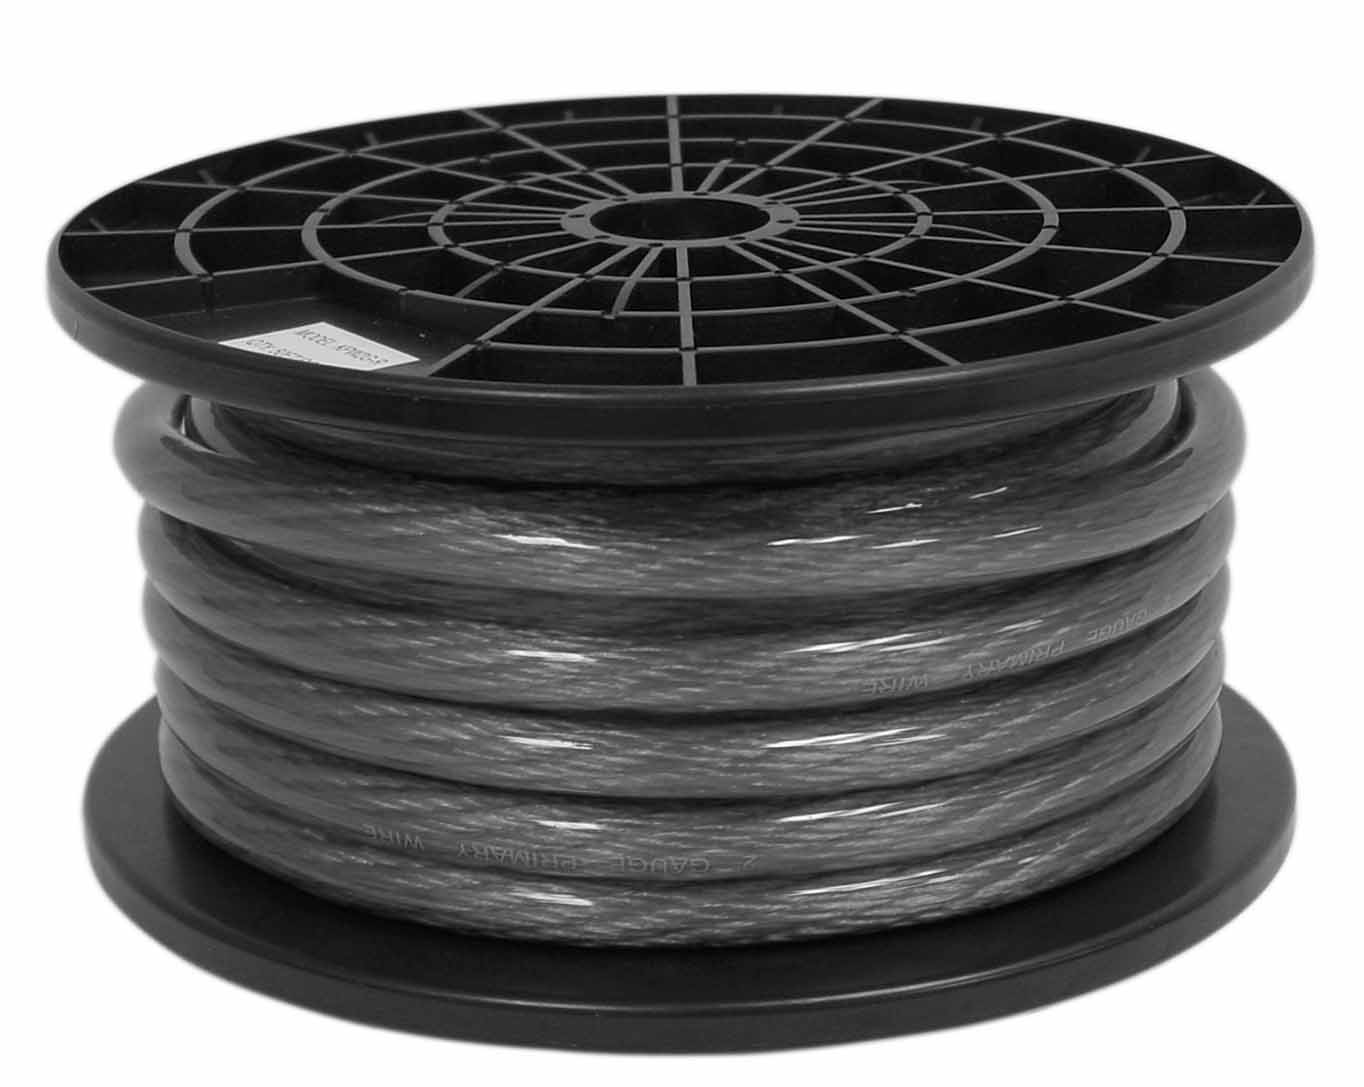 KPW2G-B - Kalibur 2 Gauge Power Wire (Black) 50' Roll